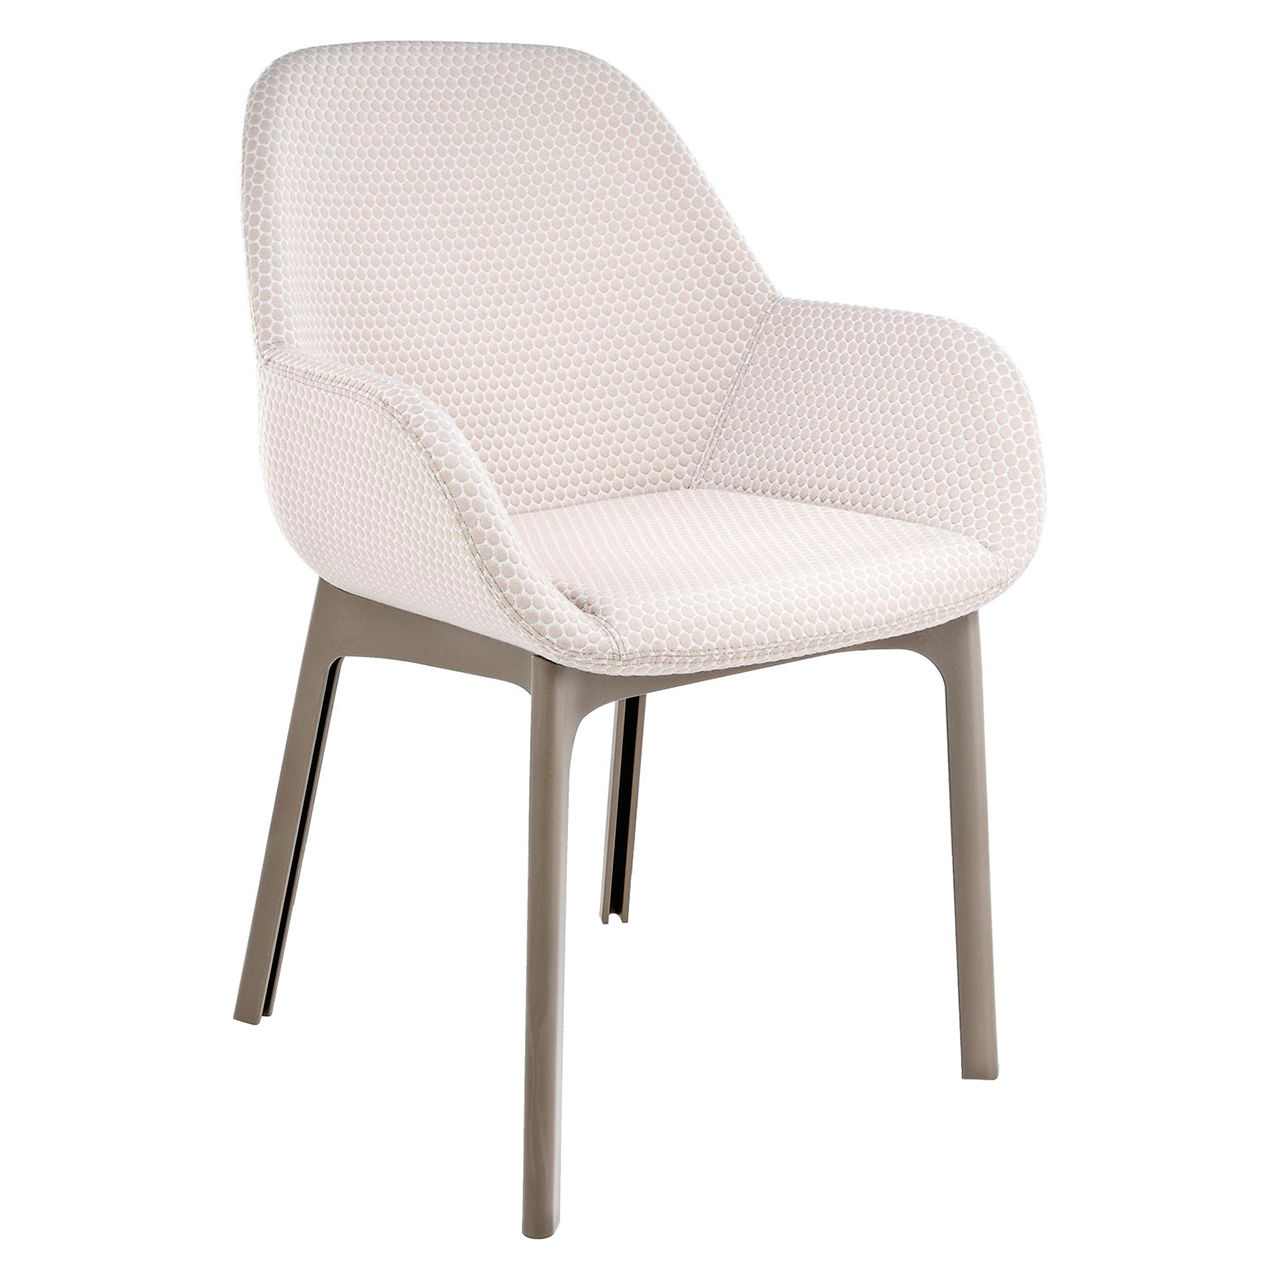 Clap Melange Chair in Tortoise and Beige by Kartell